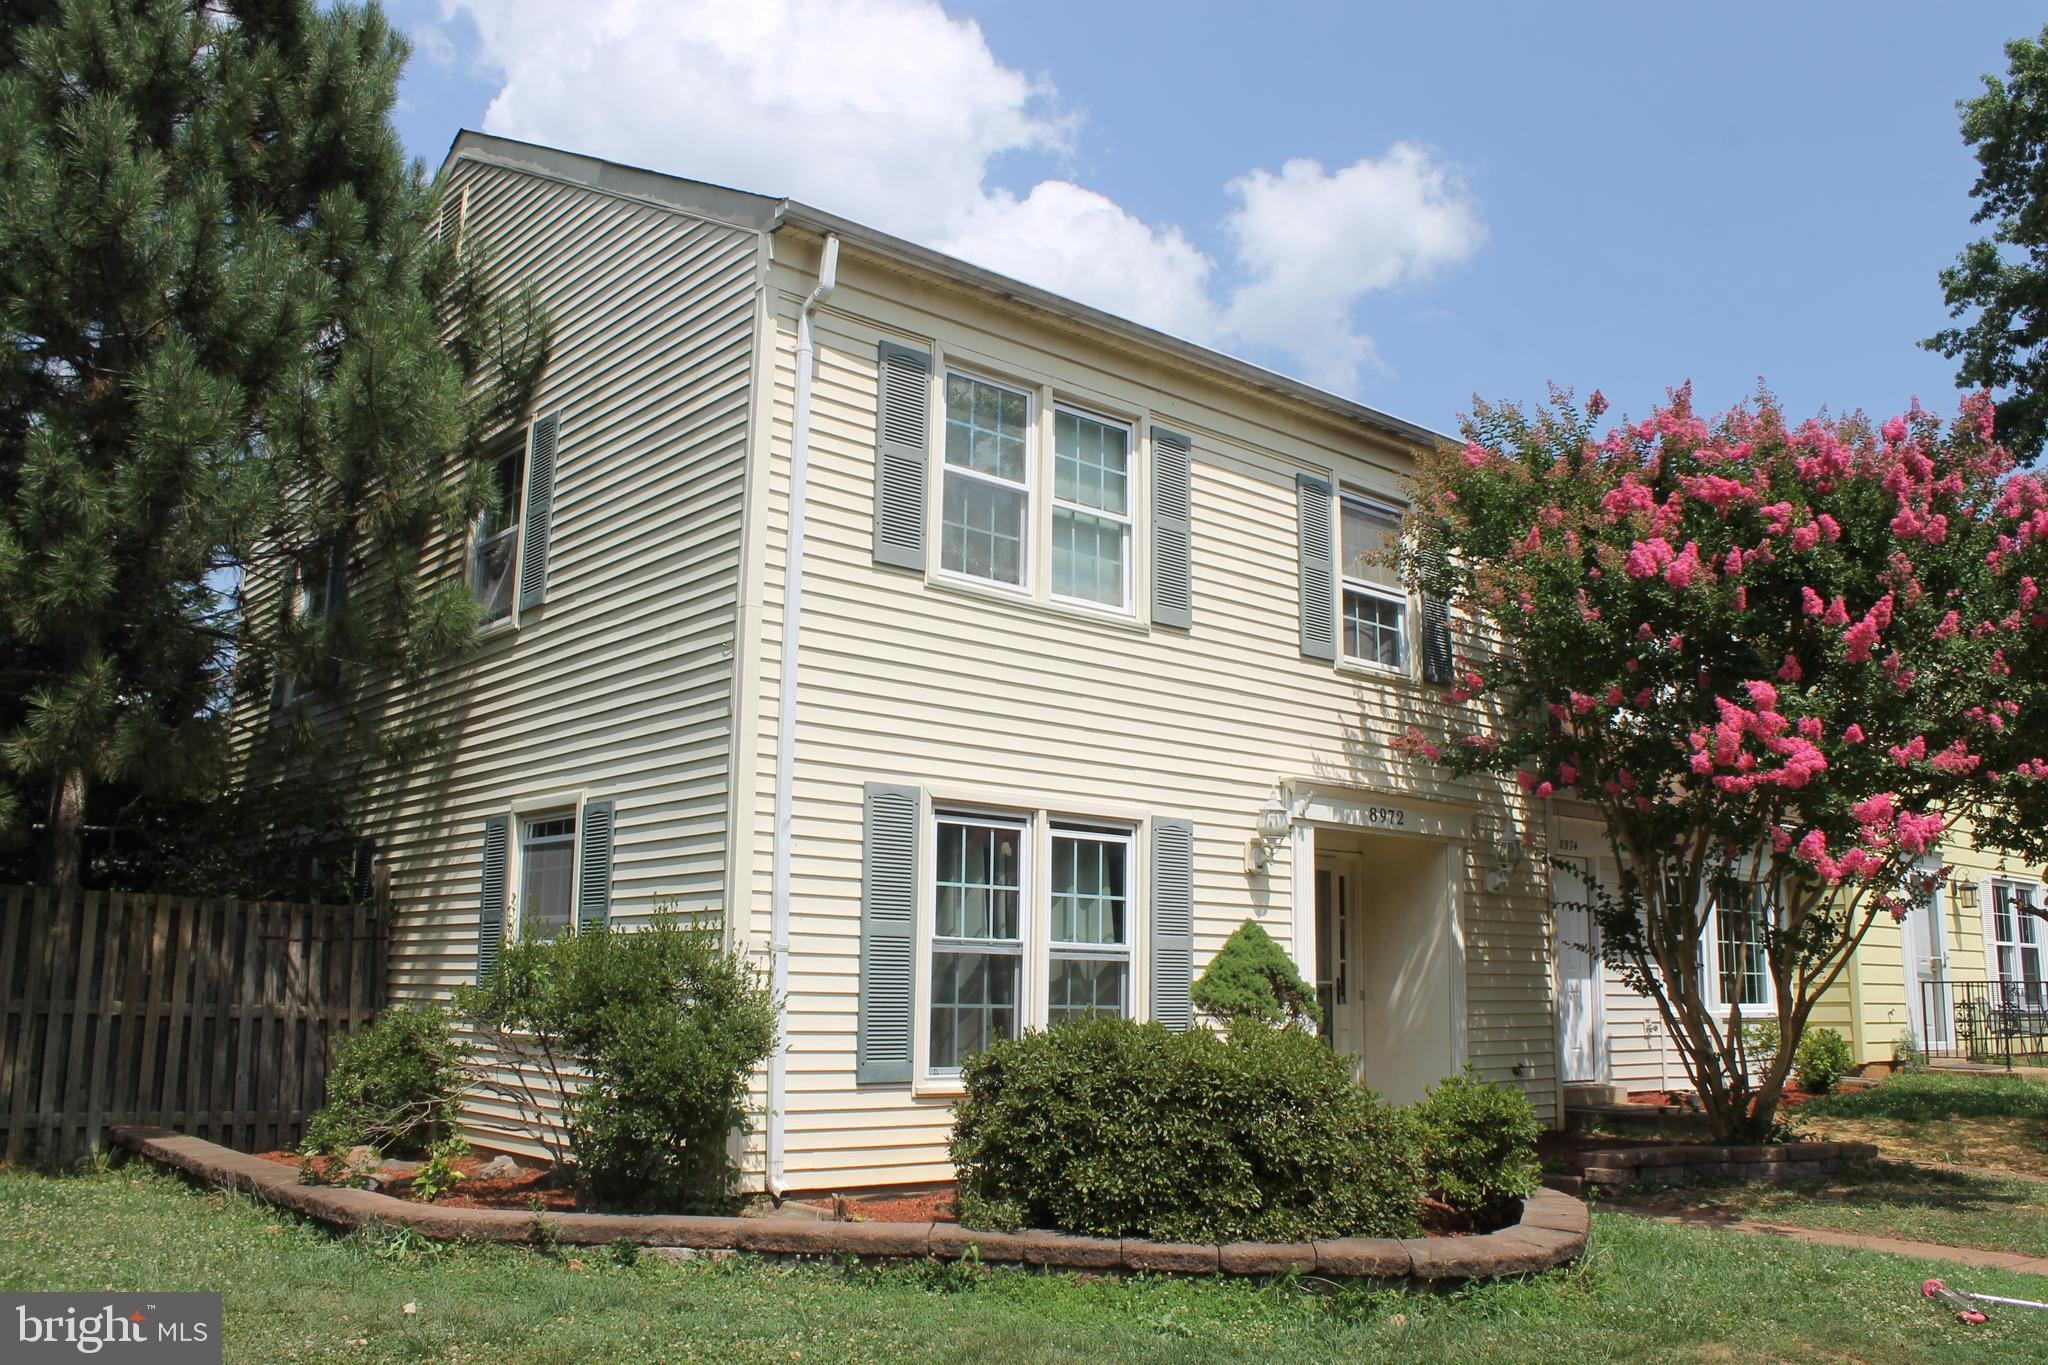 Two level end unit townhome available in Manassas City. Additional photos coming. Open floor plan from family room to dining room. Fenced in yard with California roof over stone patio. Master bedroom with private bath on upstairs level. Close to VRE, I66 & shopping.